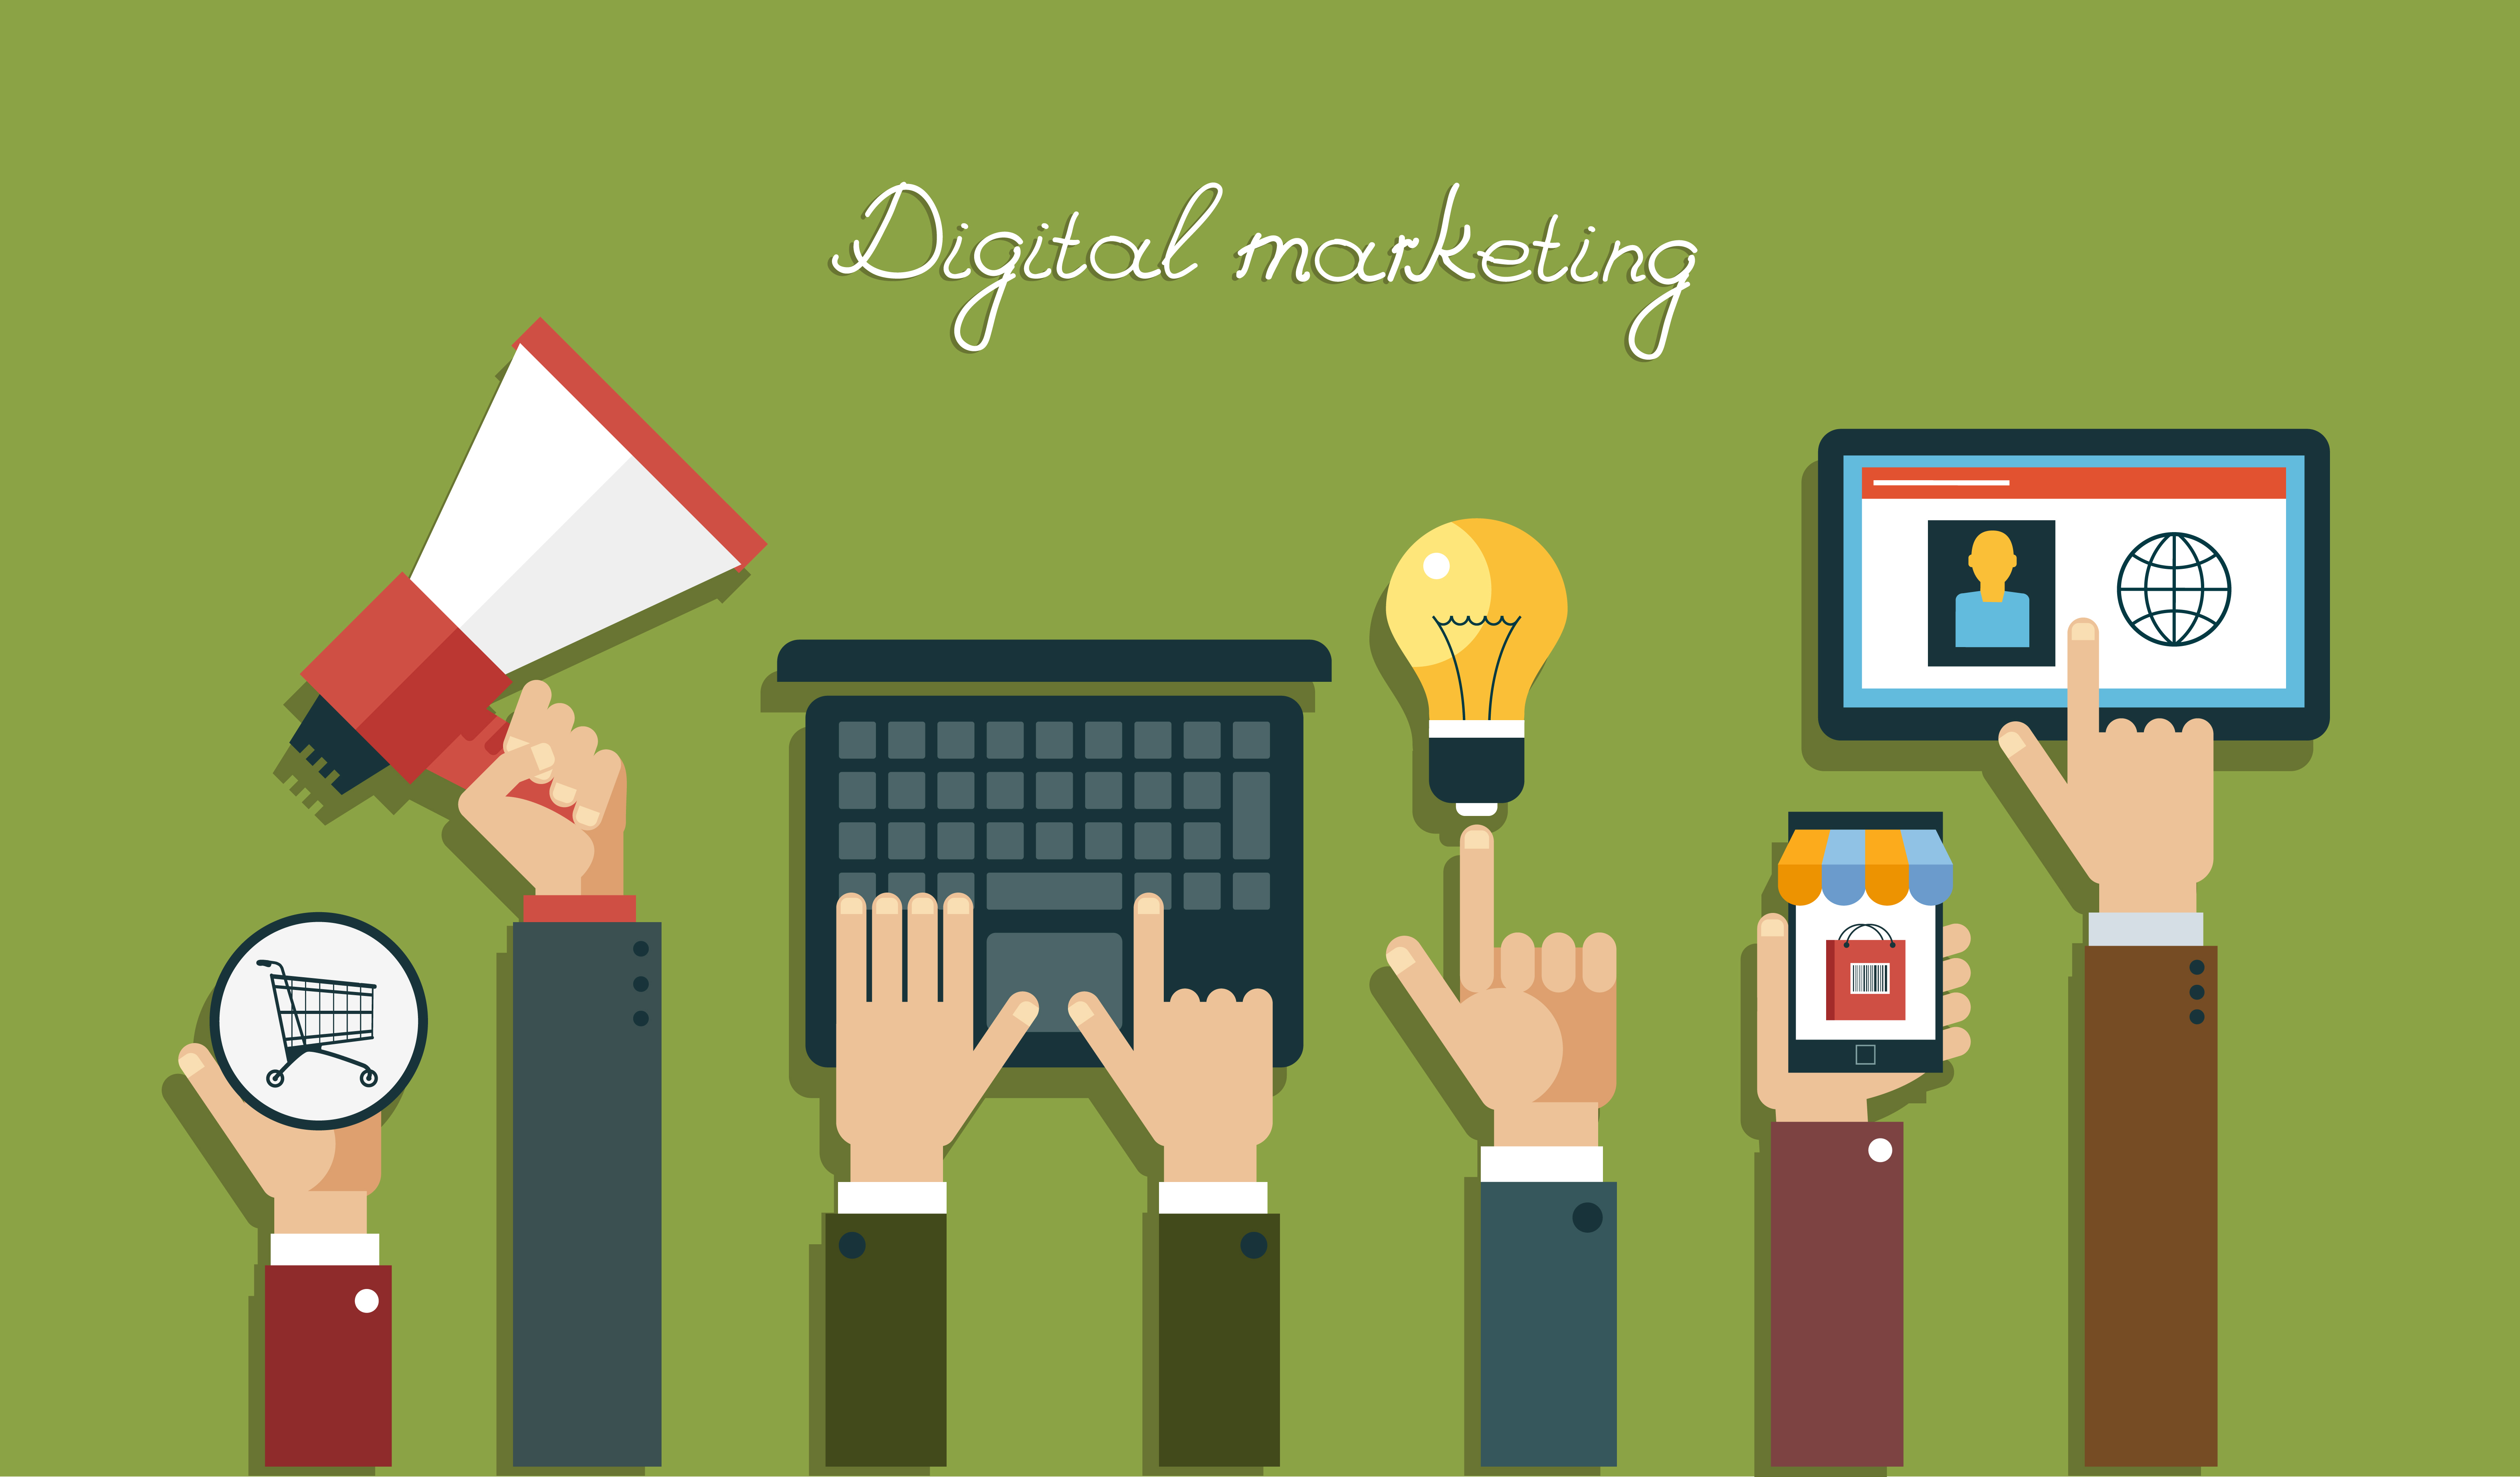 3 Point Should Be Attention In Digital Marketing